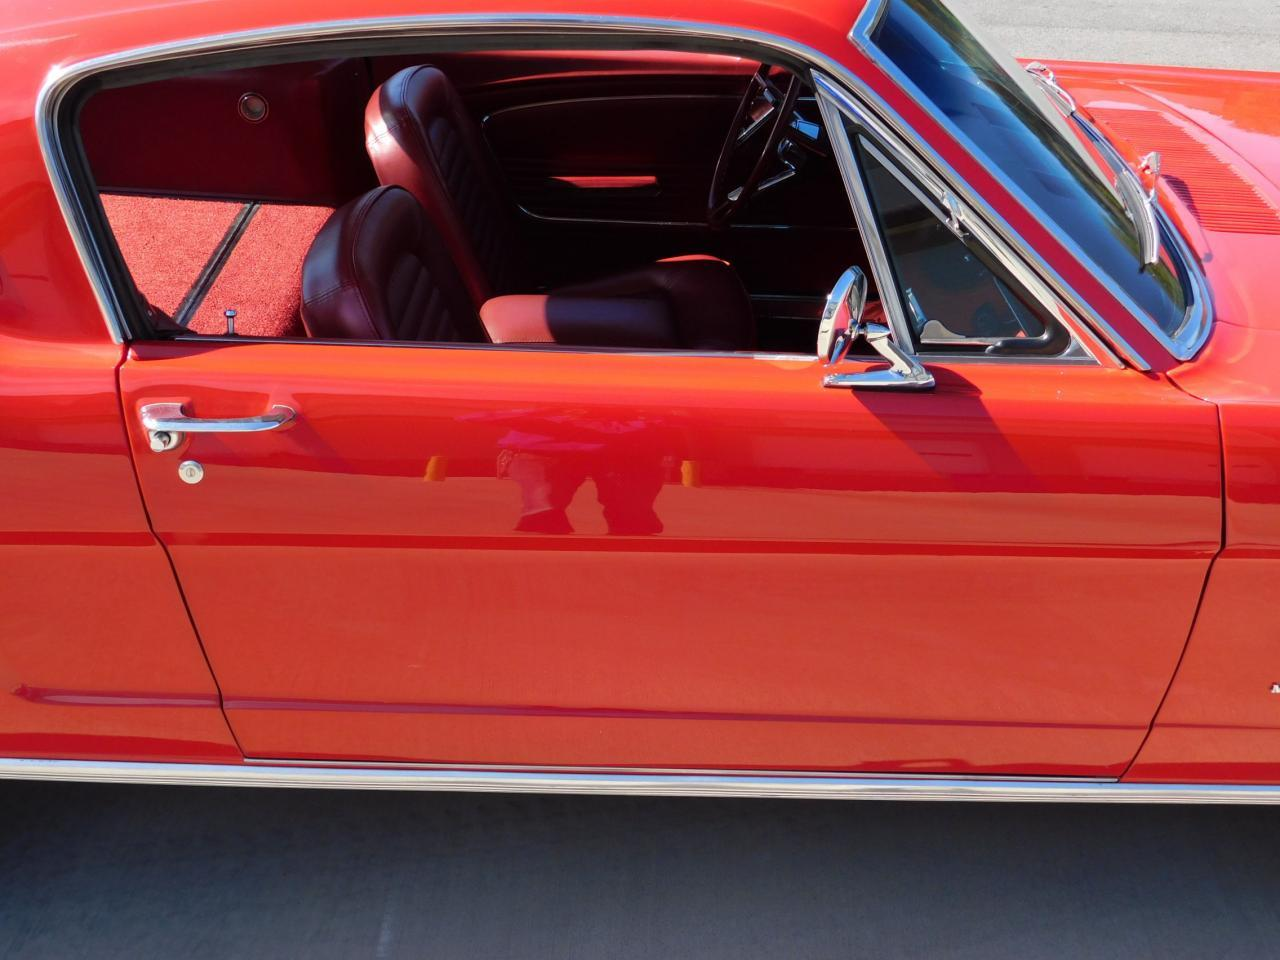 Large Picture of Classic '66 Ford Mustang located in Georgia - $46,995.00 - M8OT